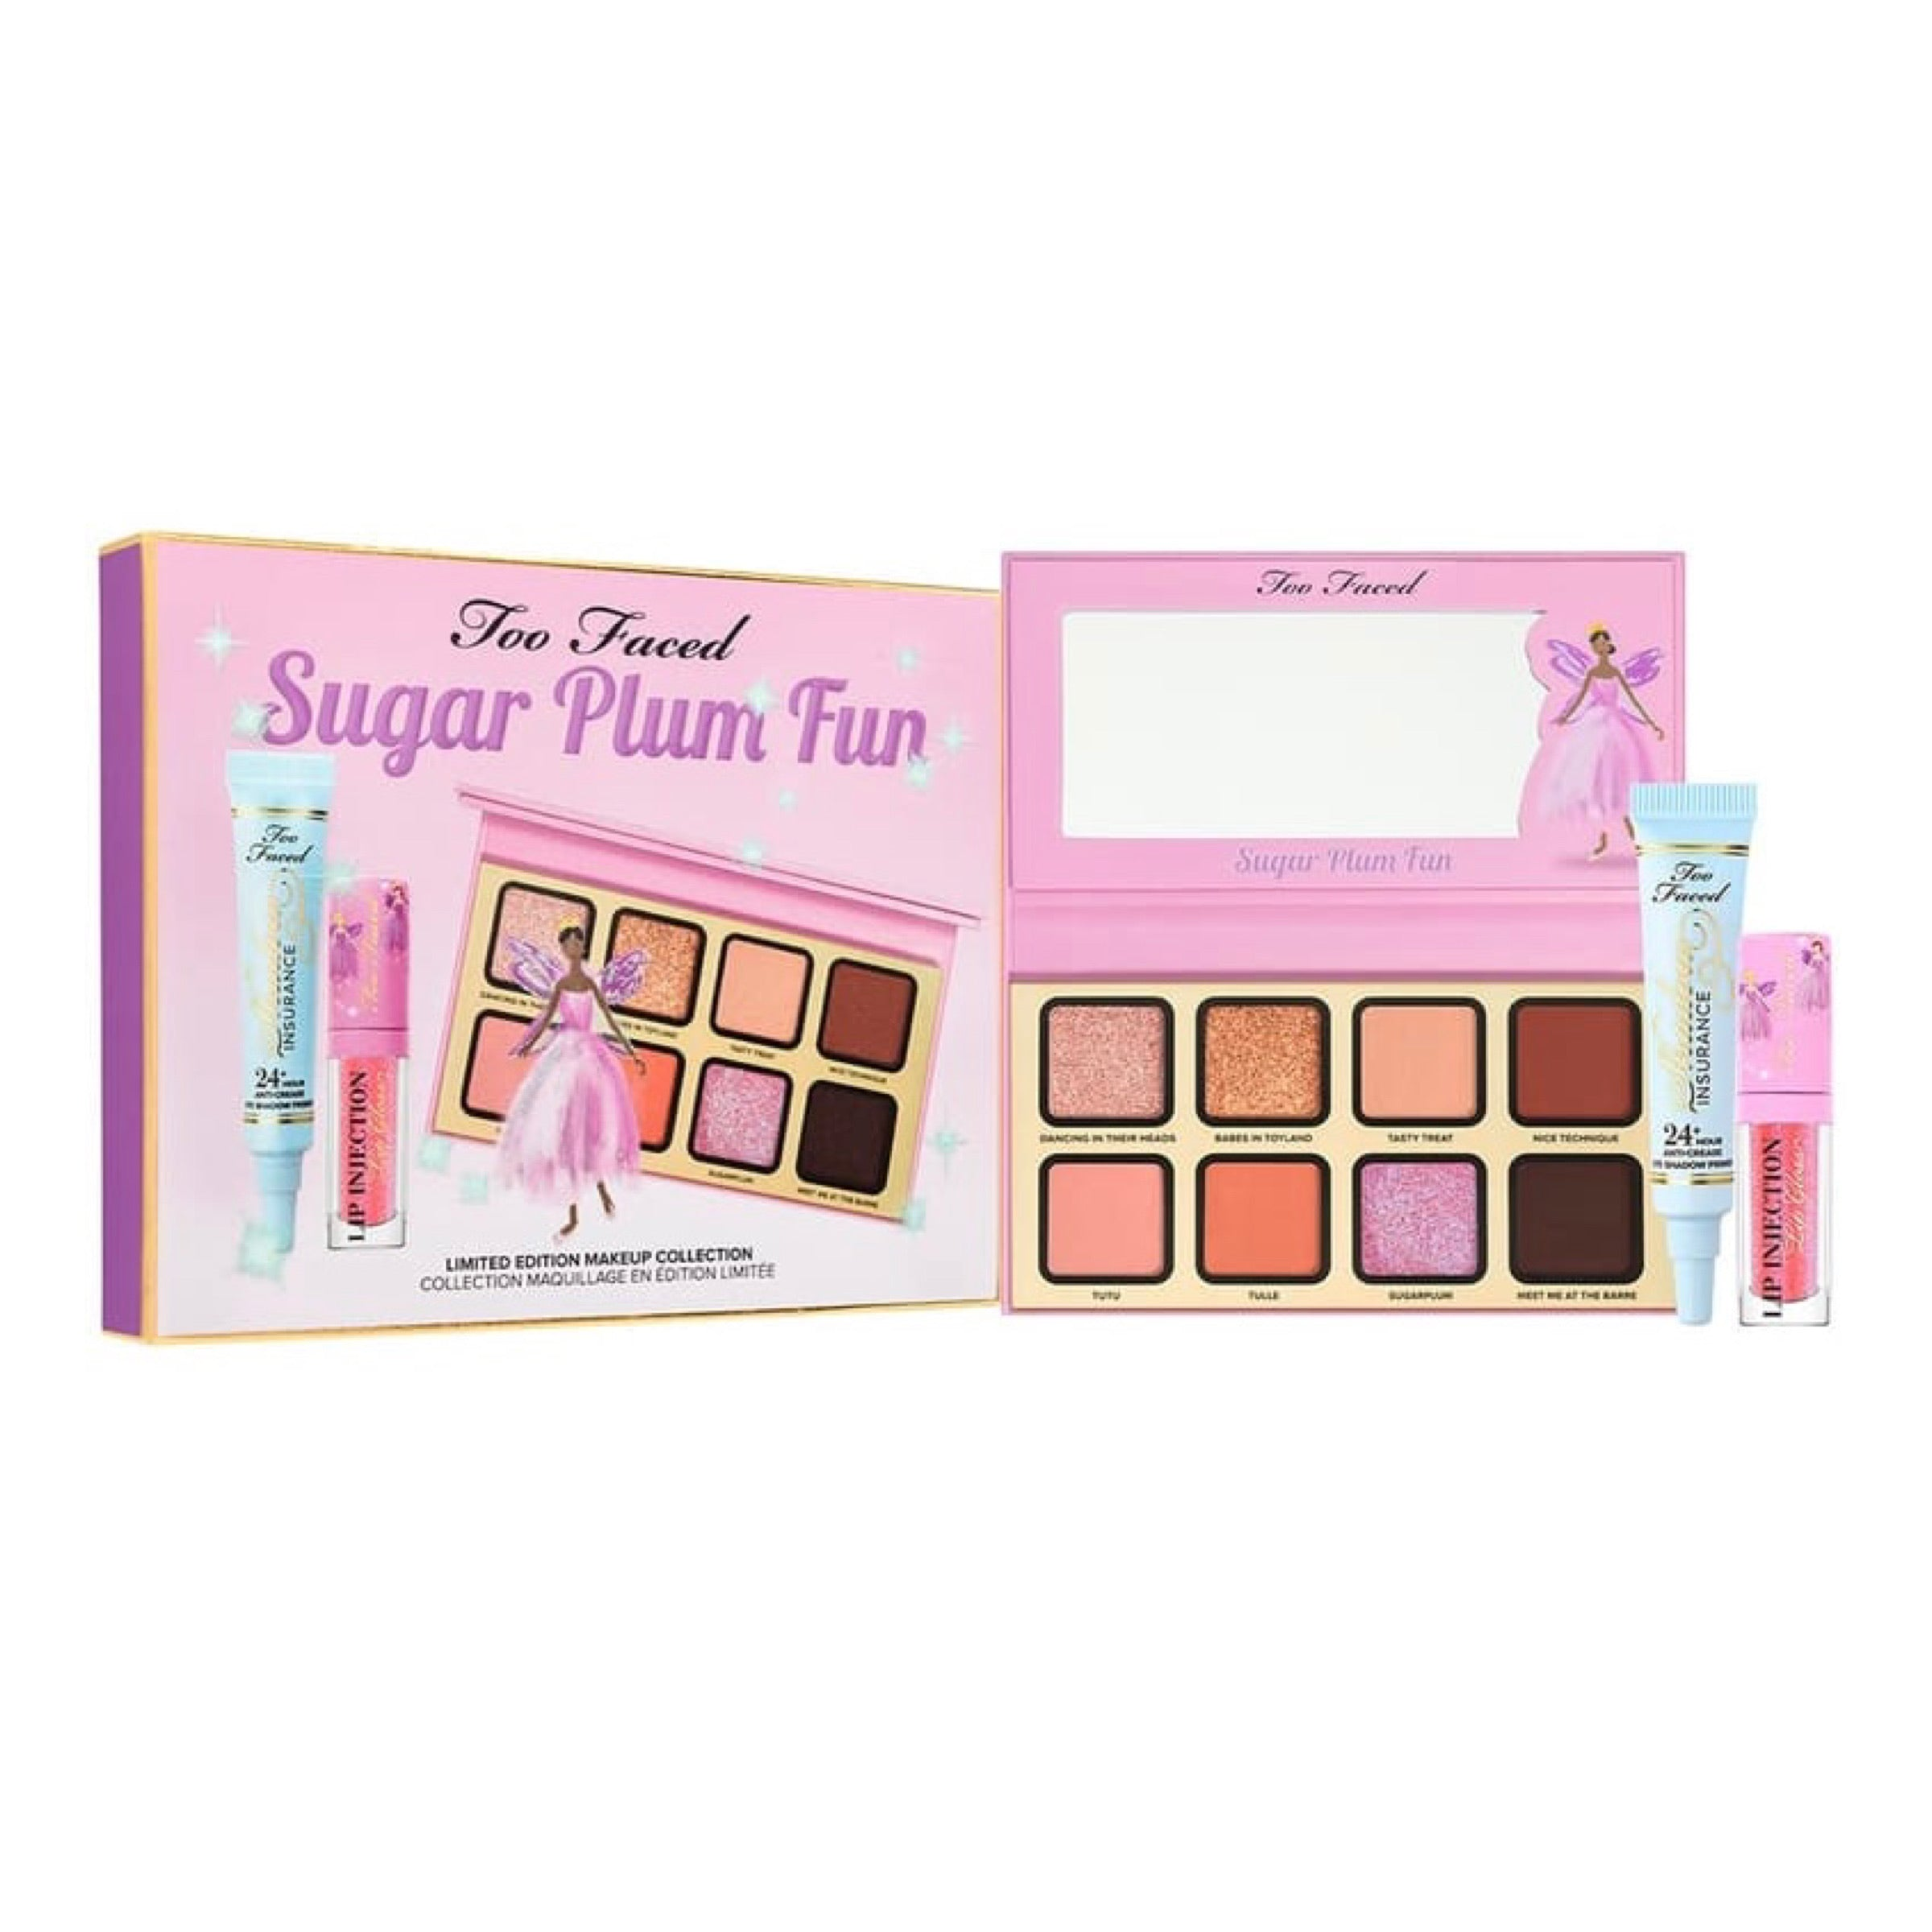 TOO FACED Sugar Plum Fun 3-Piece Makeup Set - Limited Edition